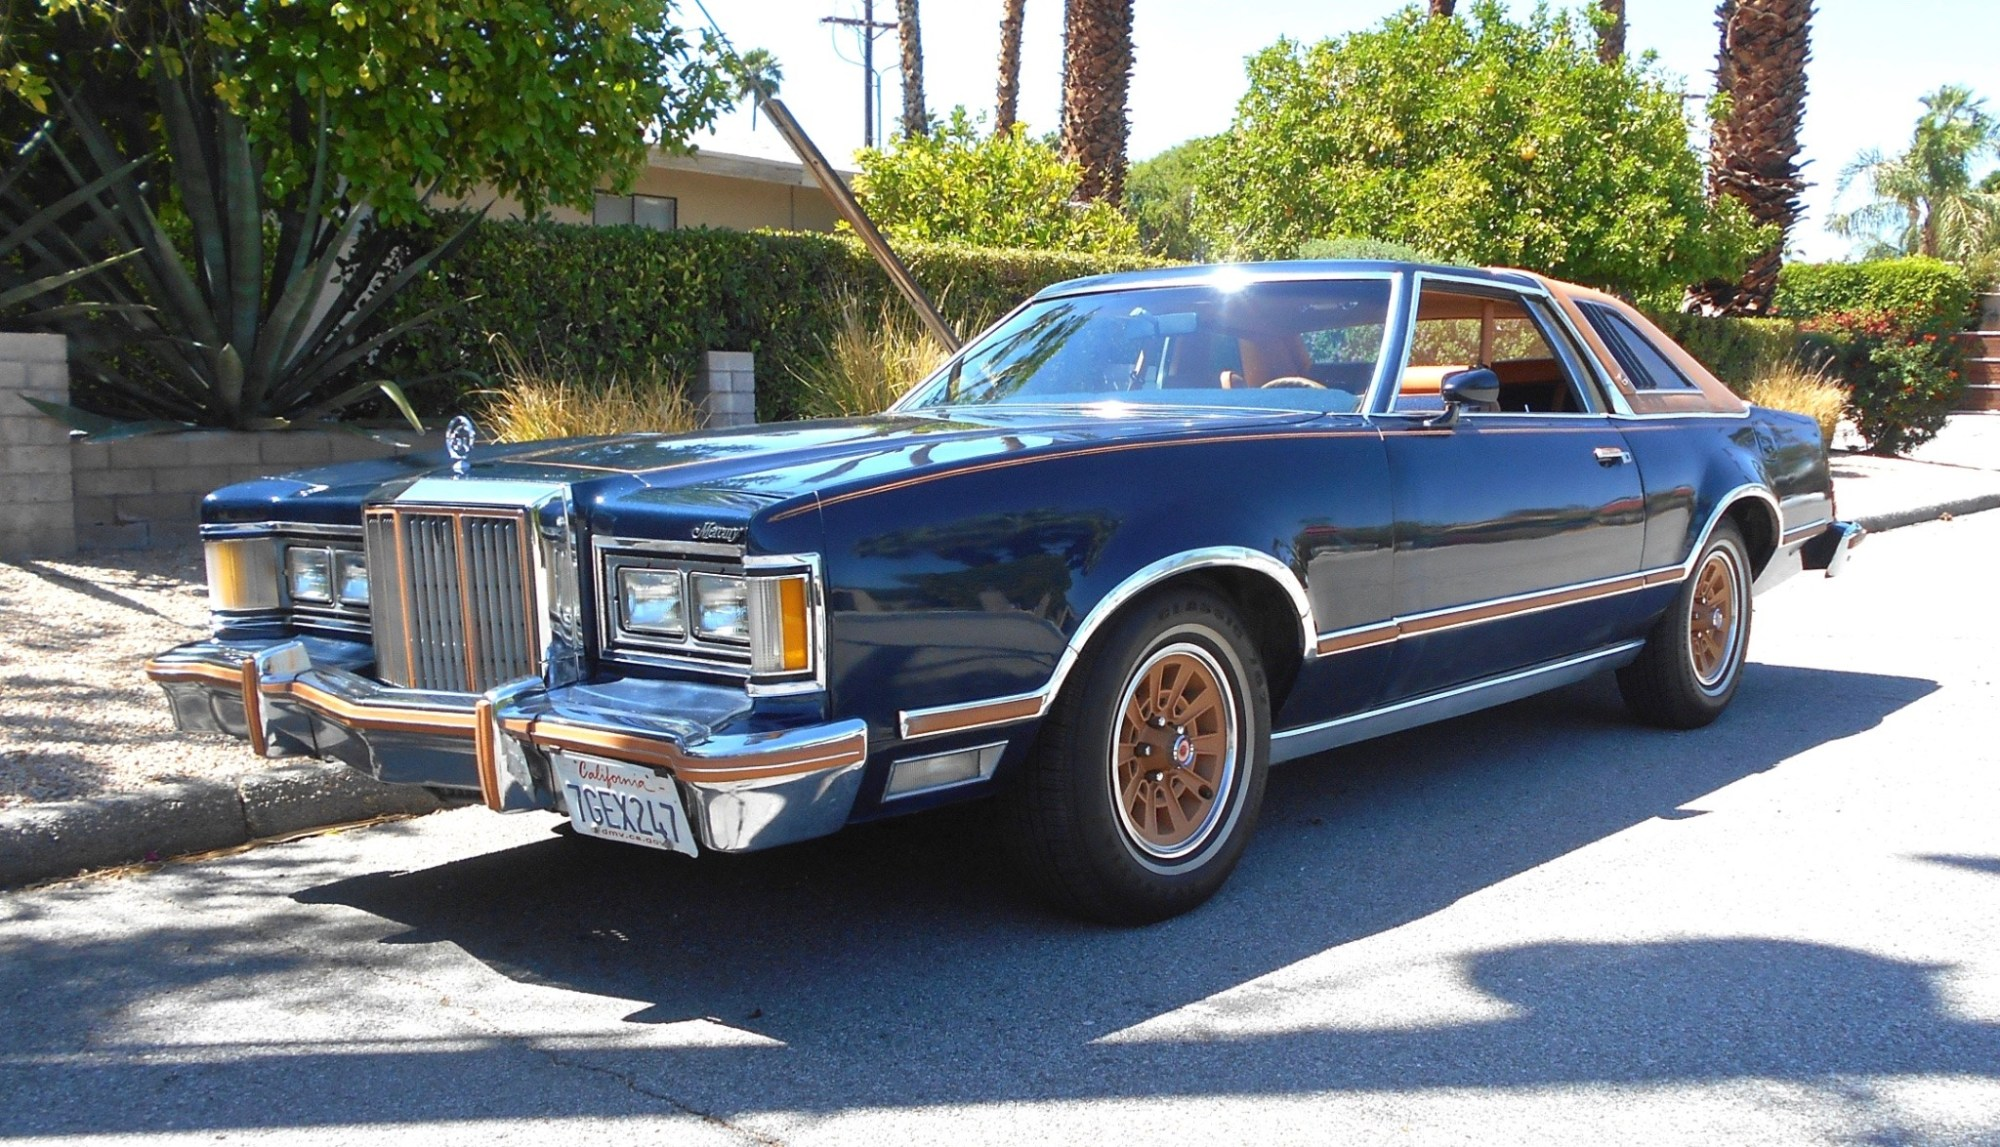 hight resolution of 1979 mercury cougar xr 7 for sale on bat auctions closed on july 31 2018 lot 11 278 bring a trailer